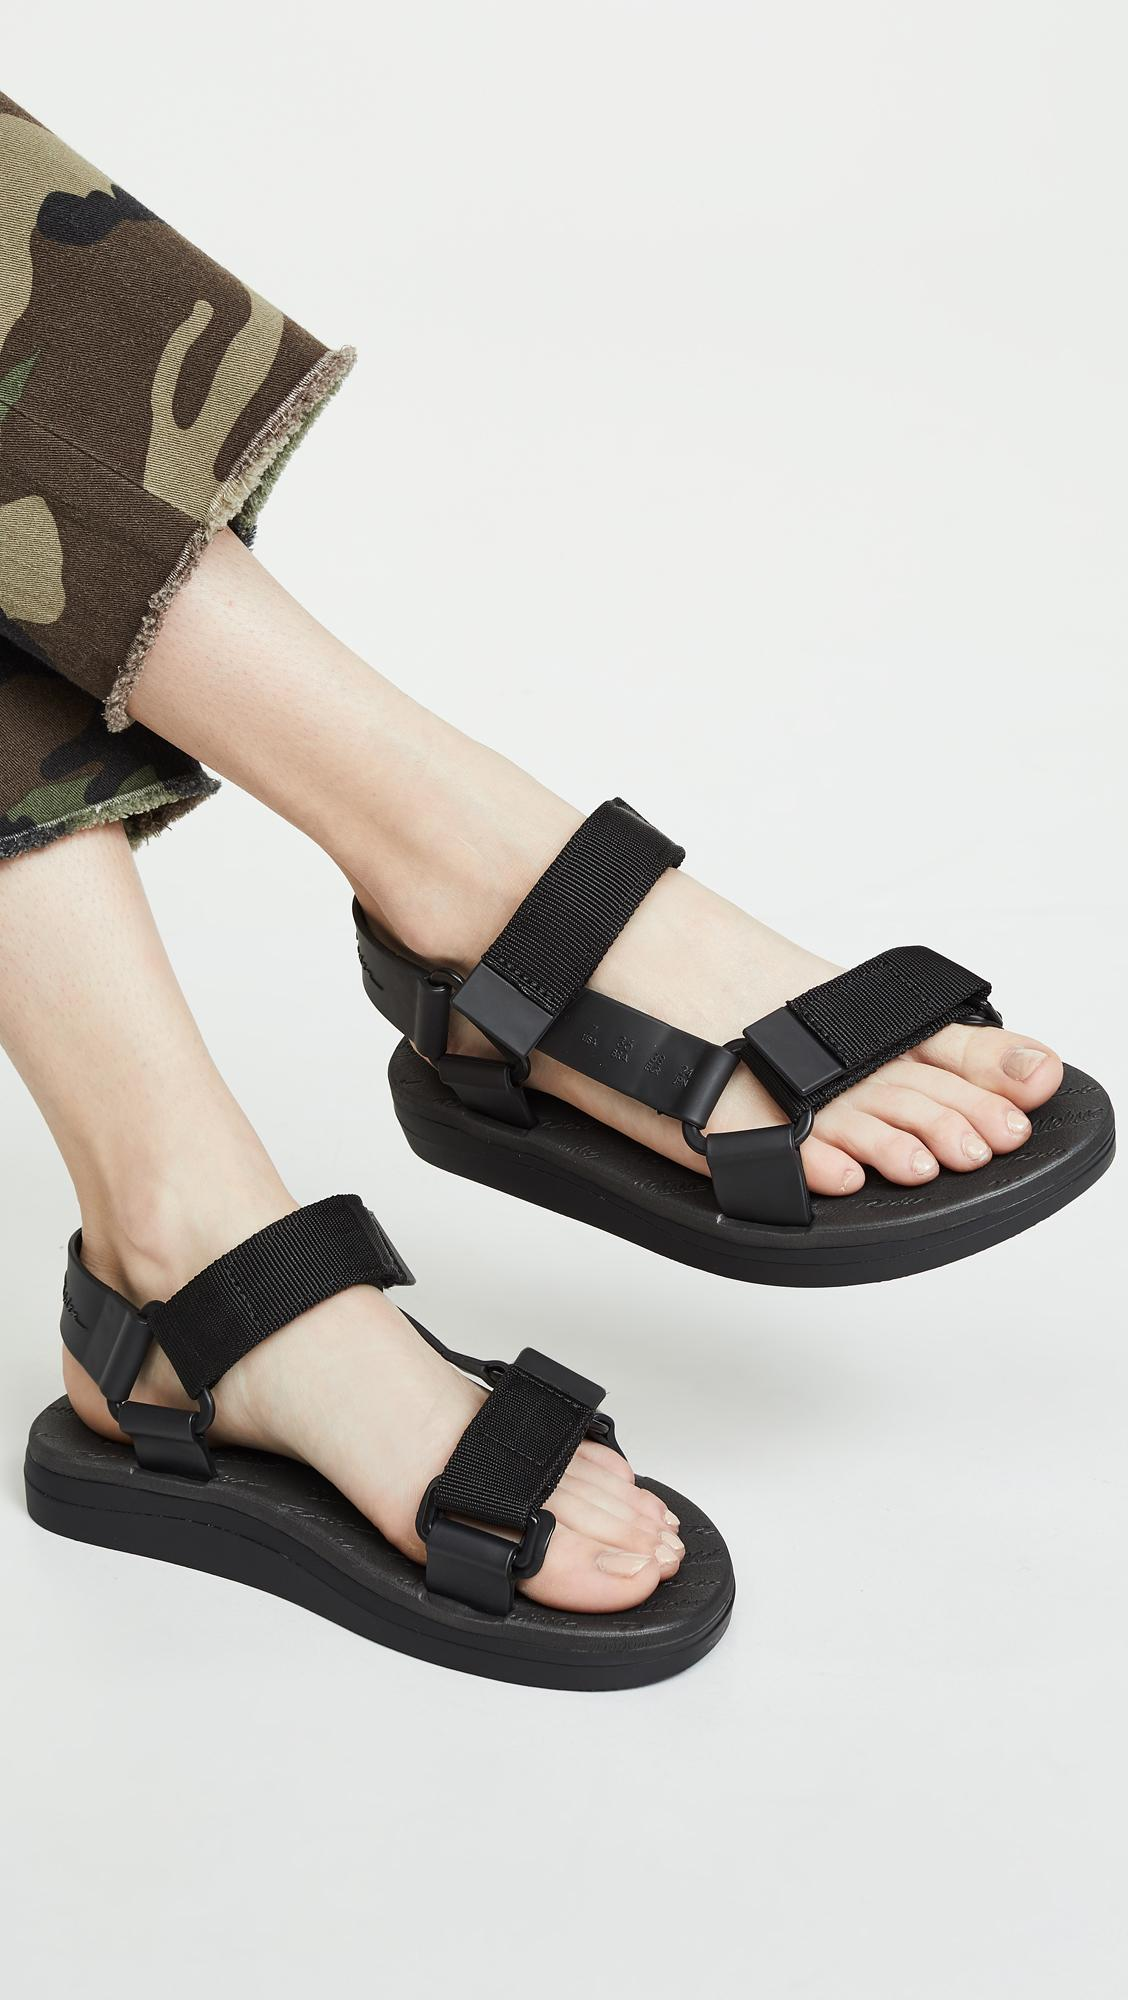 07c2e9421 Melissa X Rider Papete Sandals in Black - Lyst